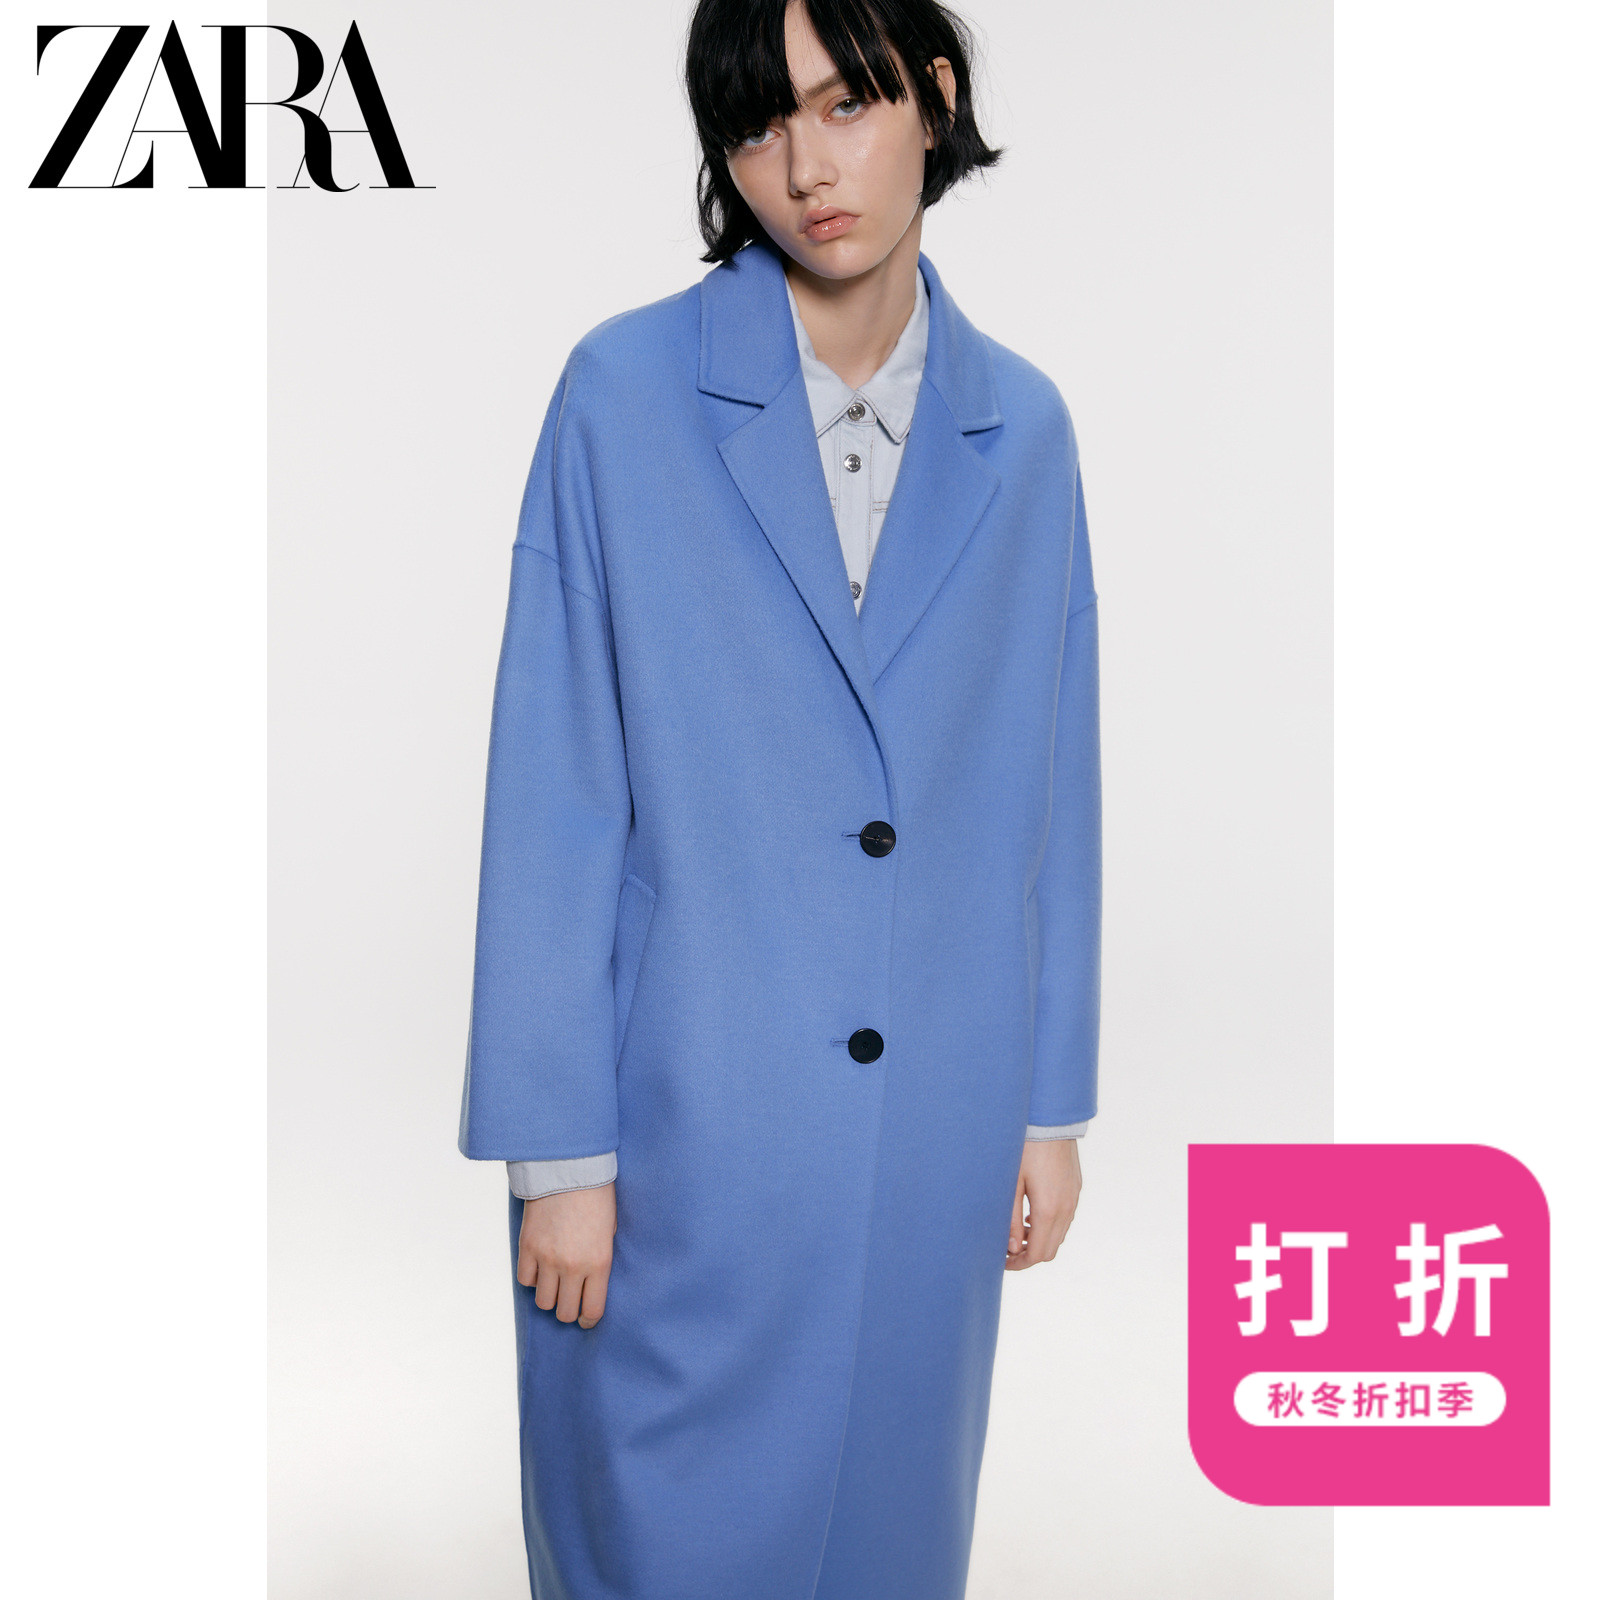 Zara discount new women's reversible loose wool coat 07522252400